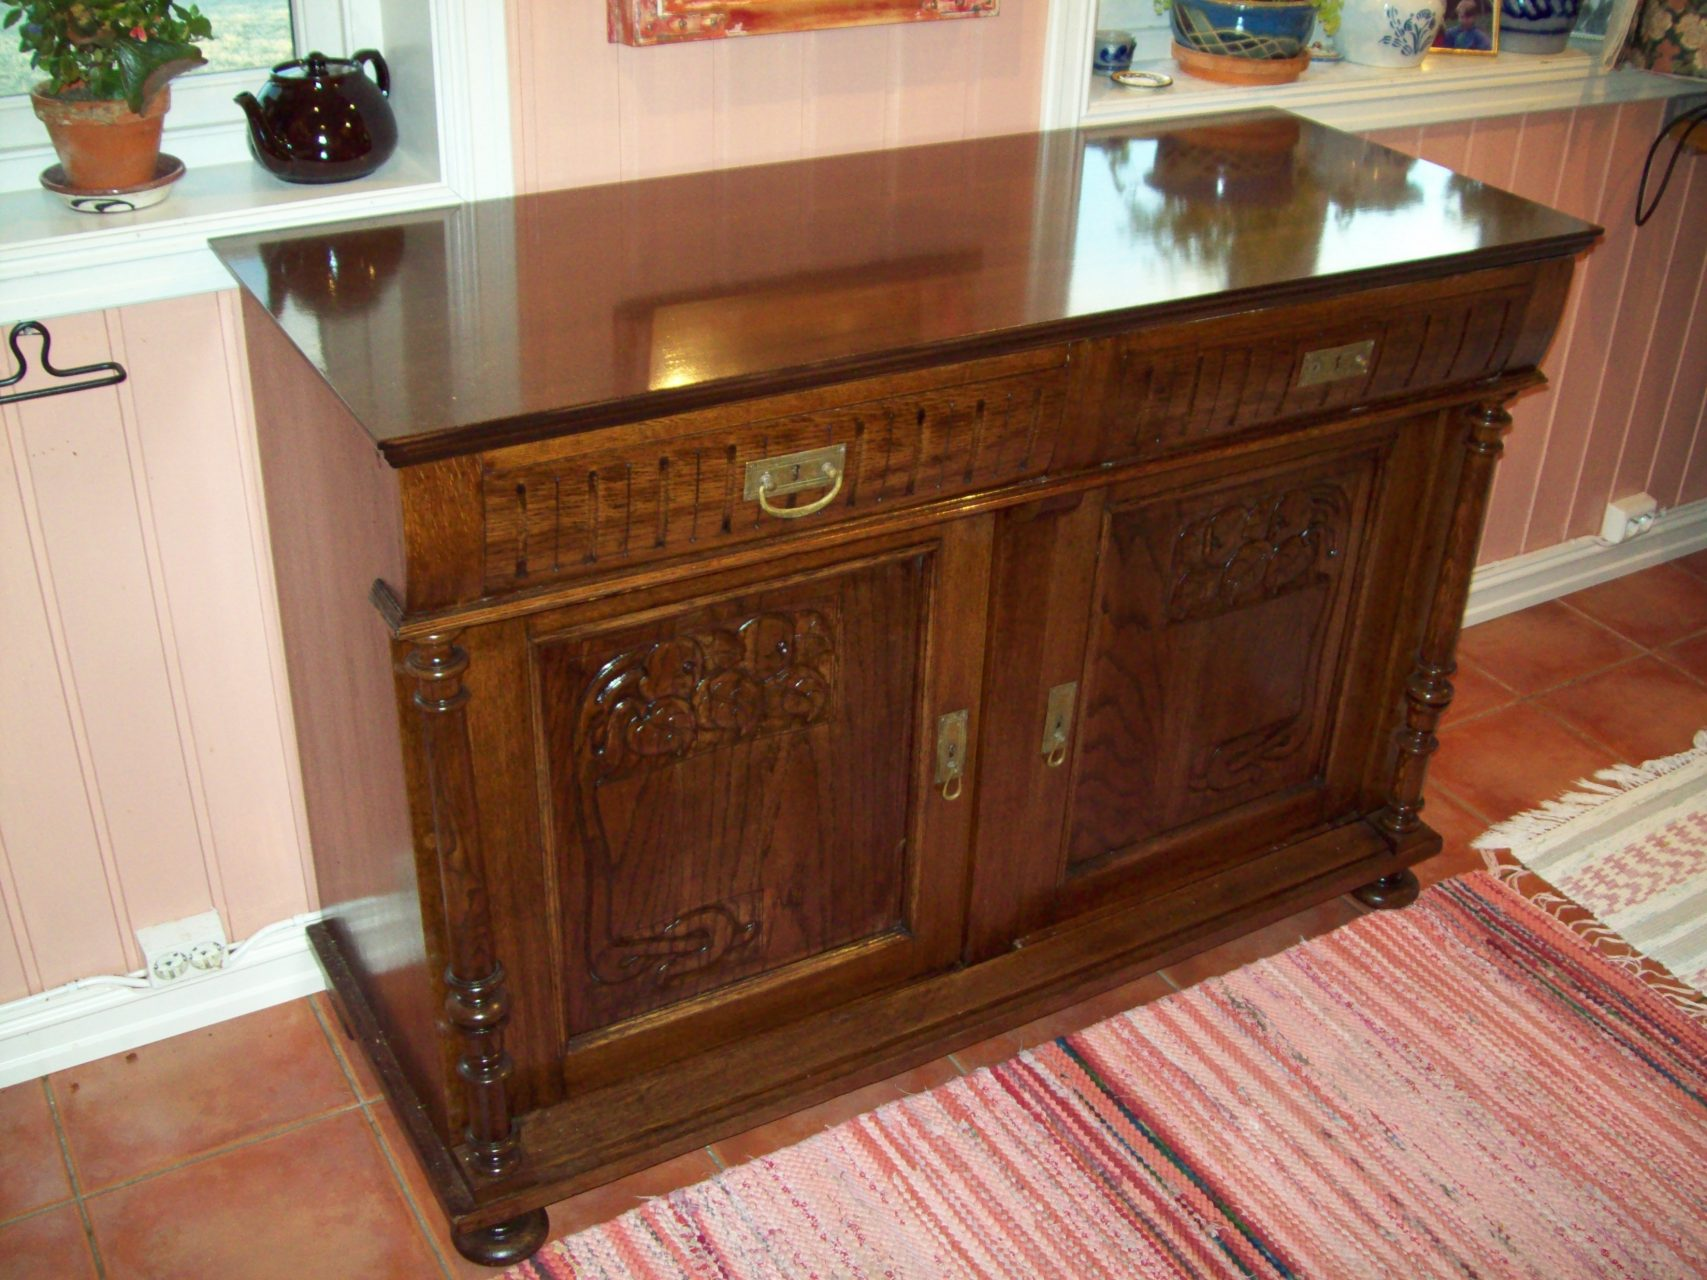 Antique cabinet restored and new cabinet top.